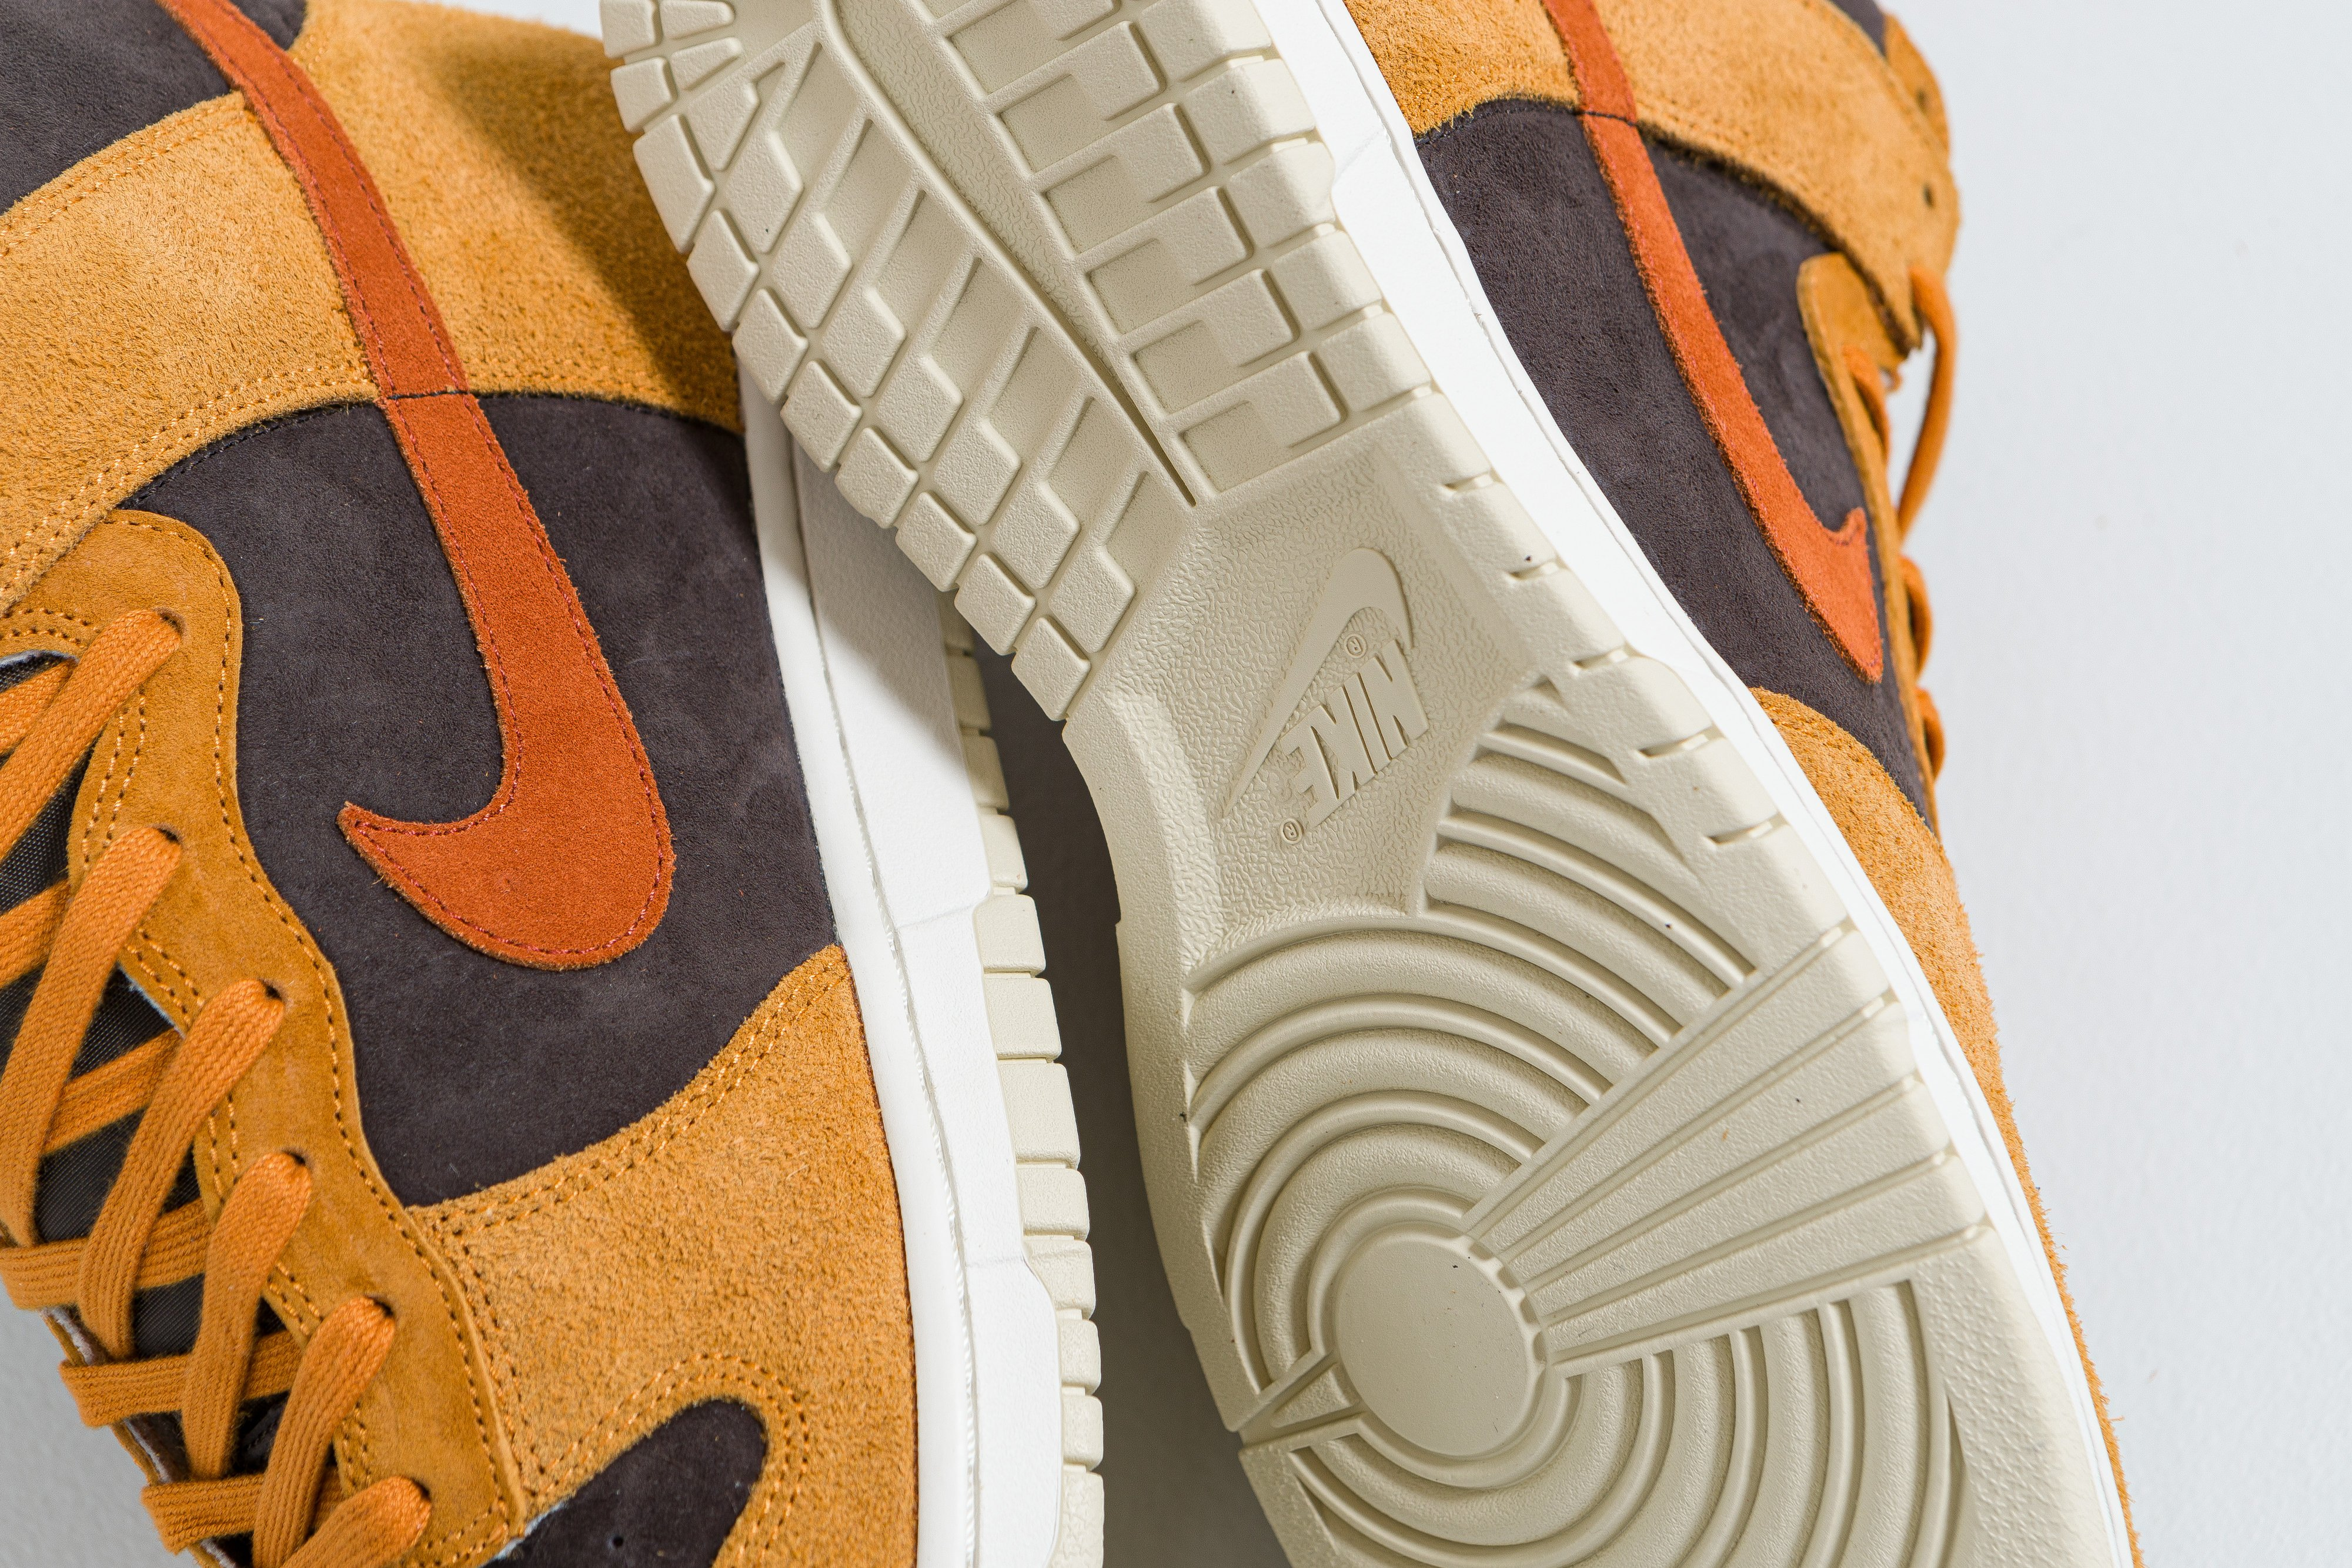 Up There Launches - Nike Dunk Low 'Medium Curry' & Dunk Hi 'Dark Curry'